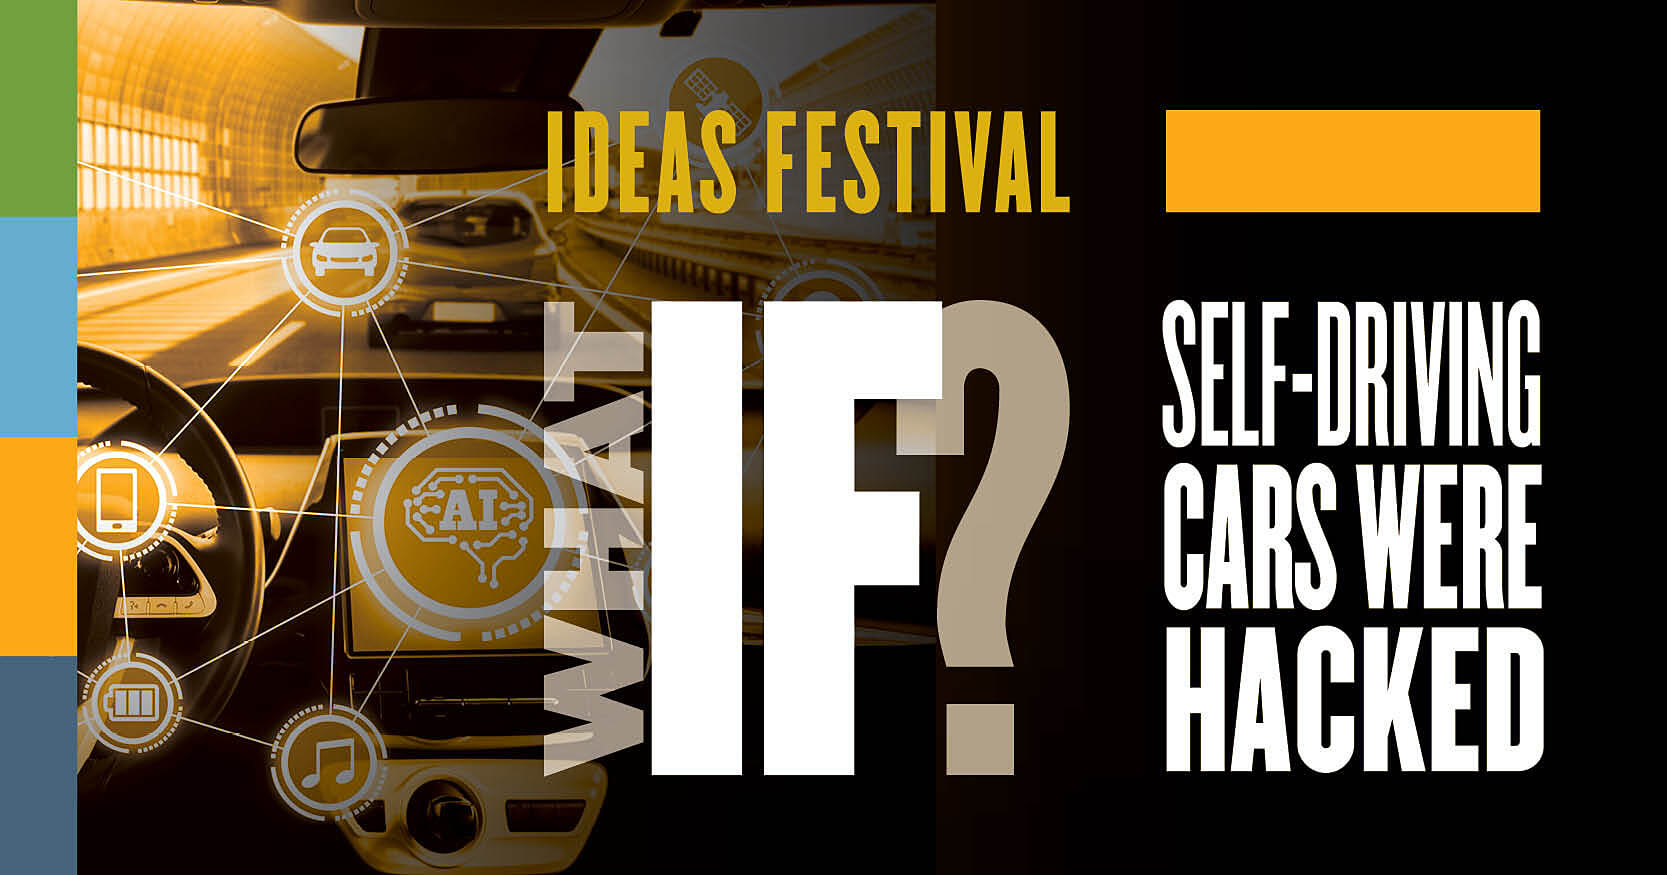 Self-driving or self-defeating: Ideas Festival to provide answers